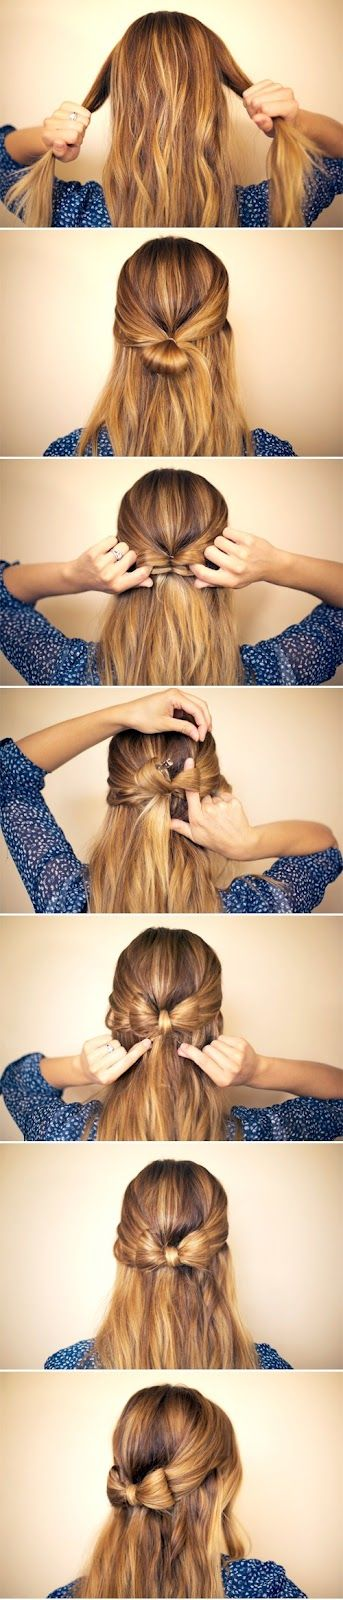 Bow hair. Once divided in half, take extra left from ponytail and flip it over the middle. (With my luck, I'd have to cut my hair when its all said & done)